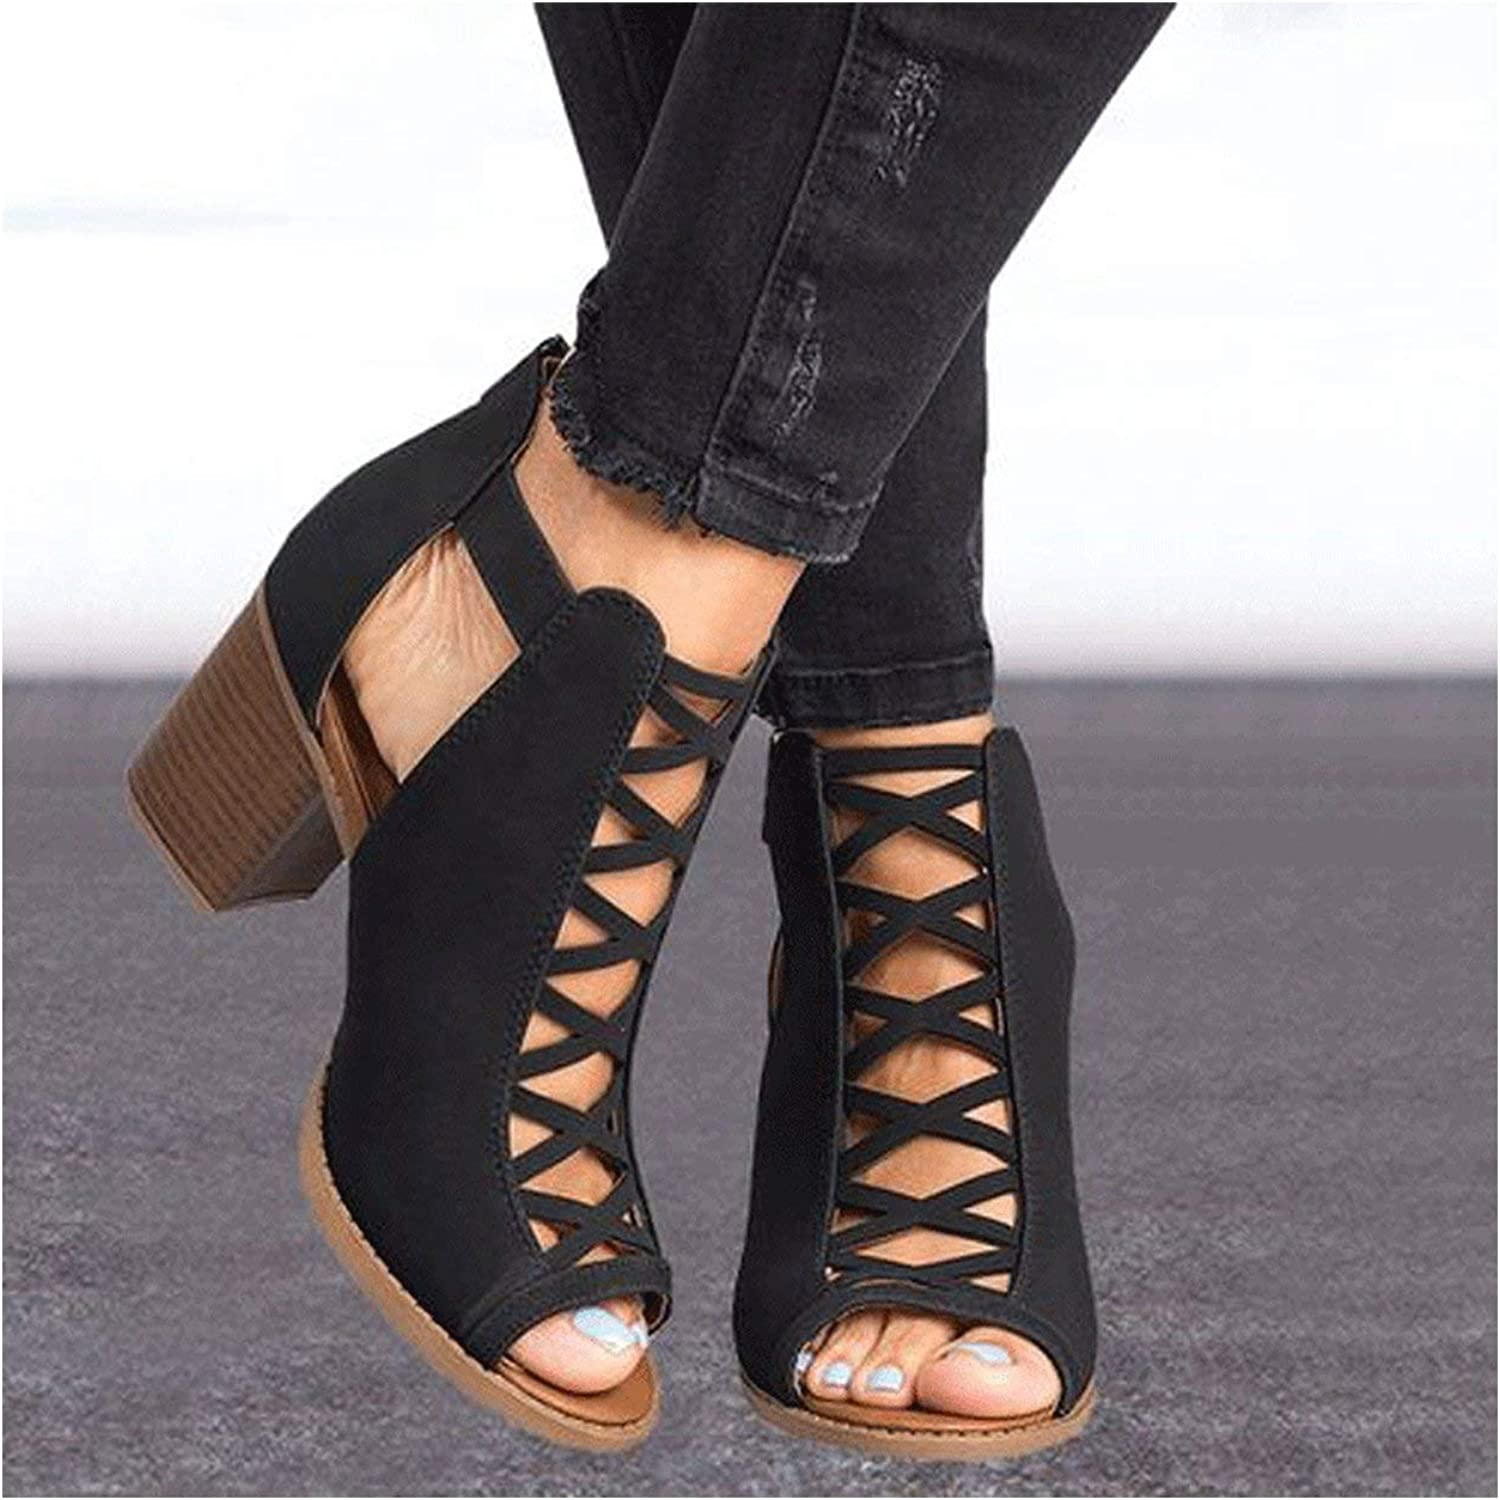 HANBINGPO Summer New Sexy Women Sandals High-Heel shoes Woman Fashion Rome Fish Mouth Hoof Heels Hollow Large Size 35-43 Casual shoes,Black,11